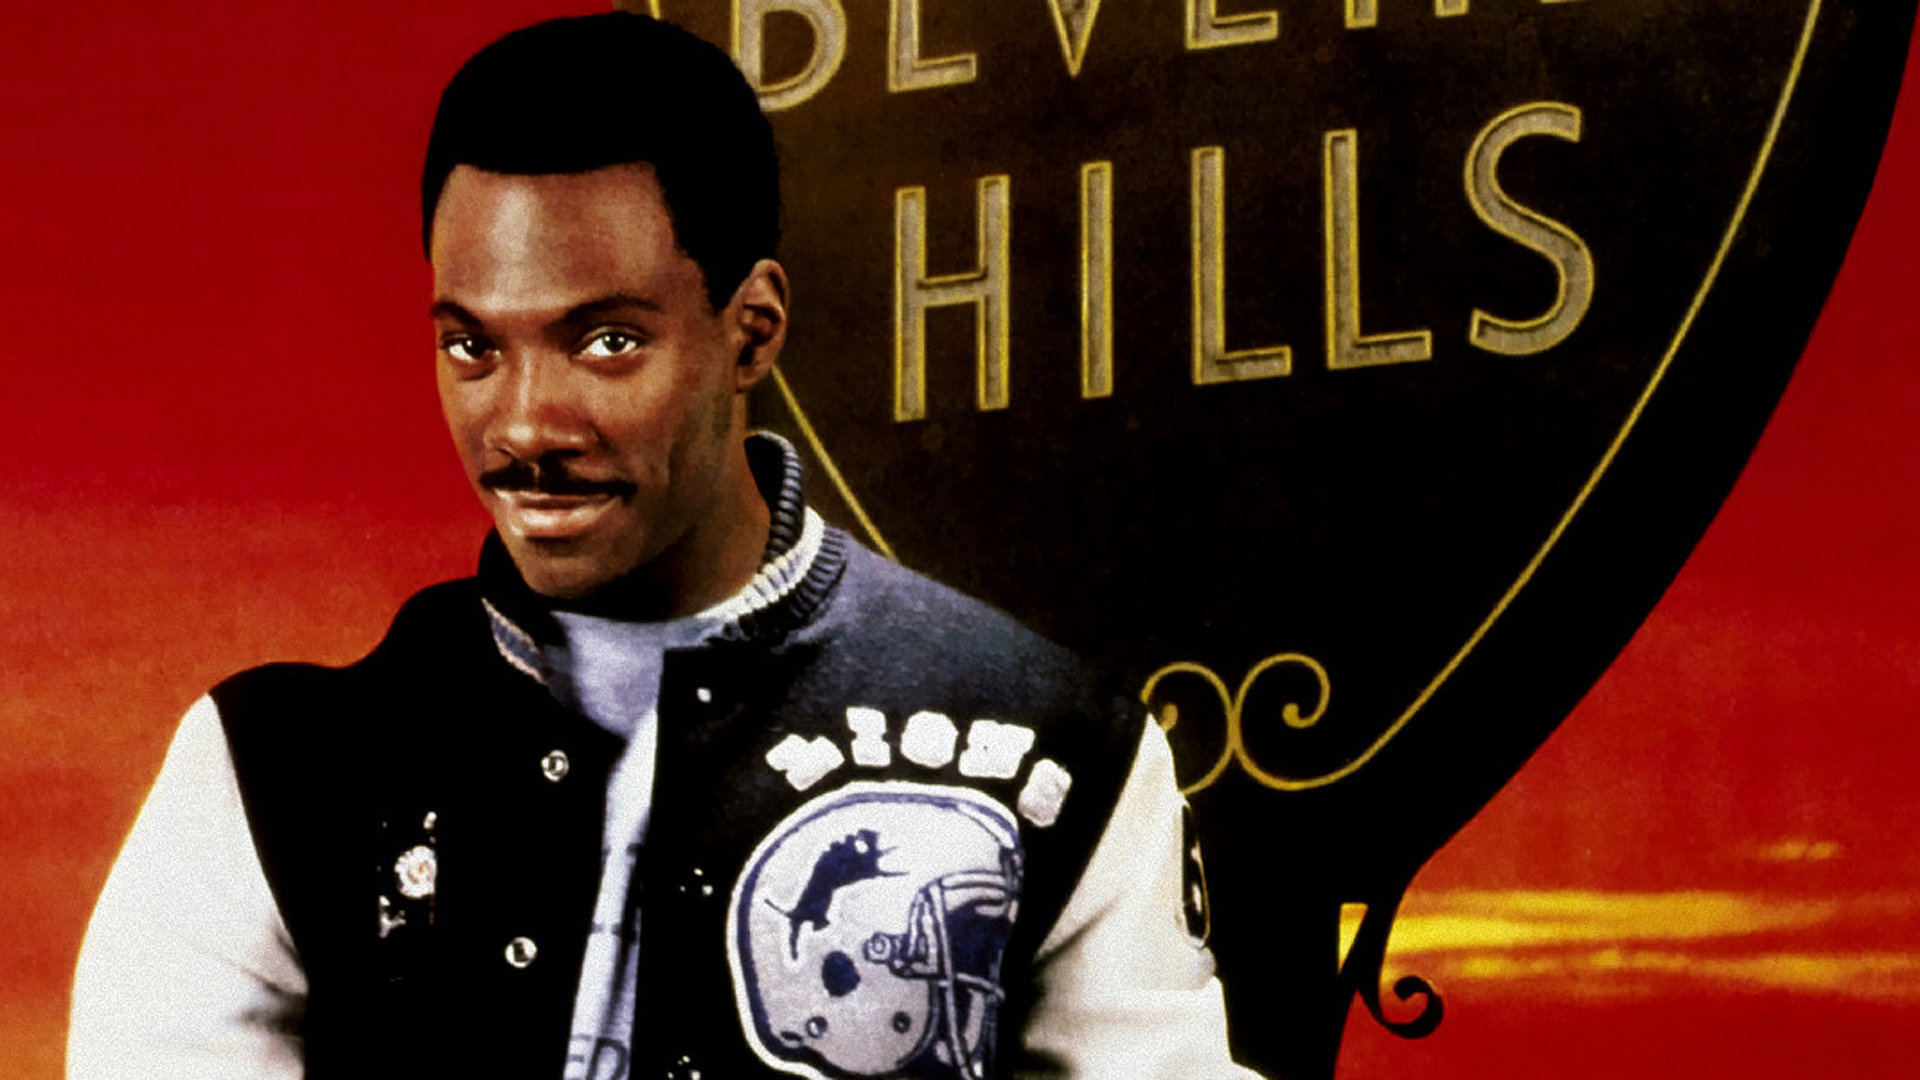 May 16, Beverly Hills Cop